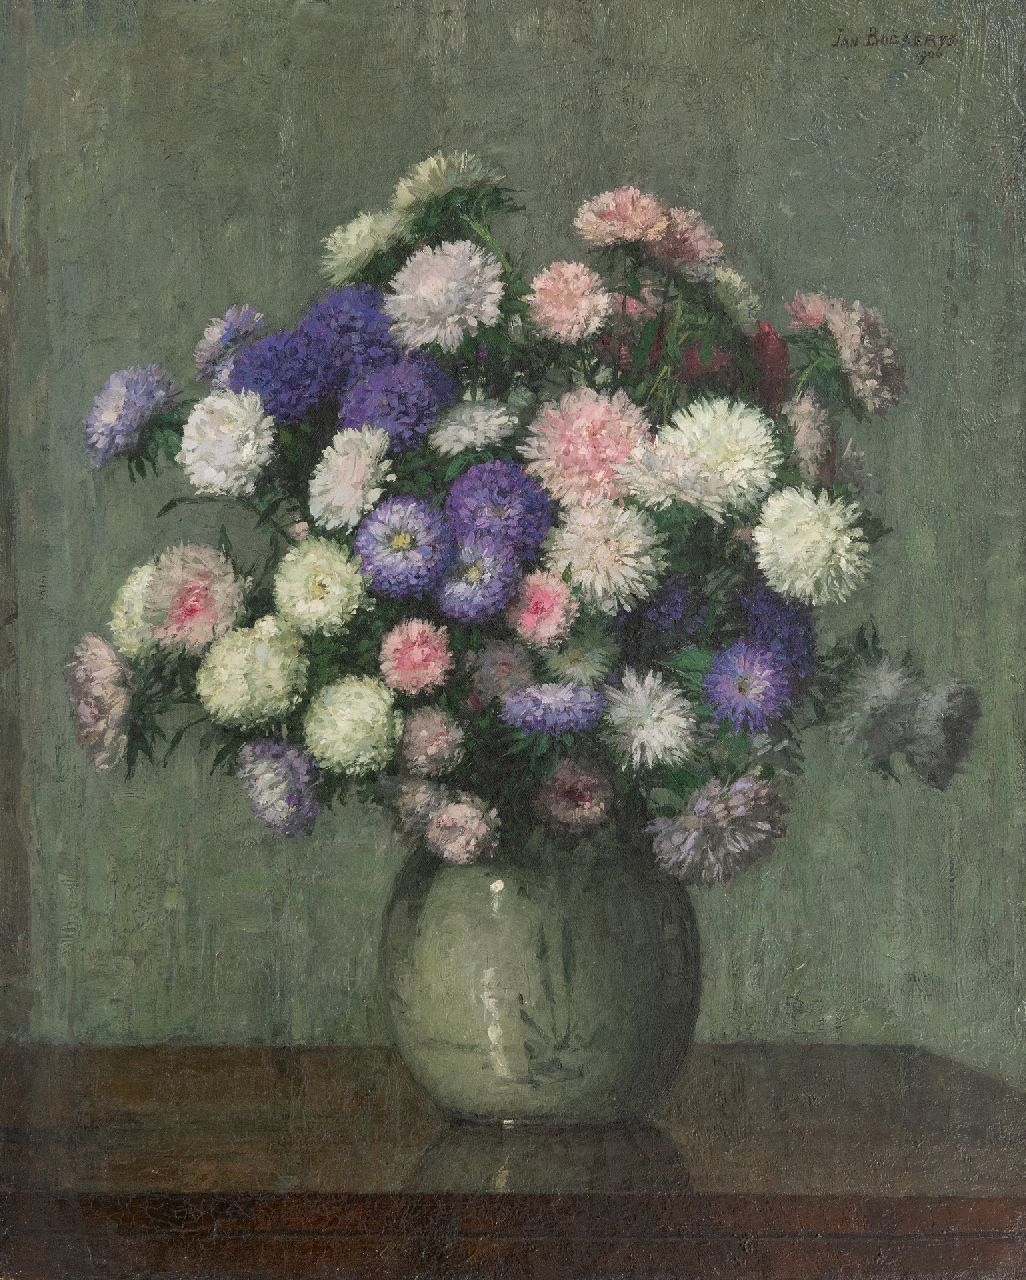 Bogaerts J.J.M.  | Johannes Jacobus Maria 'Jan' Bogaerts | Paintings offered for sale | Autumn asters in a vase, oil on canvas 61.9 x 50.2 cm, signed u.r. and dated 1906